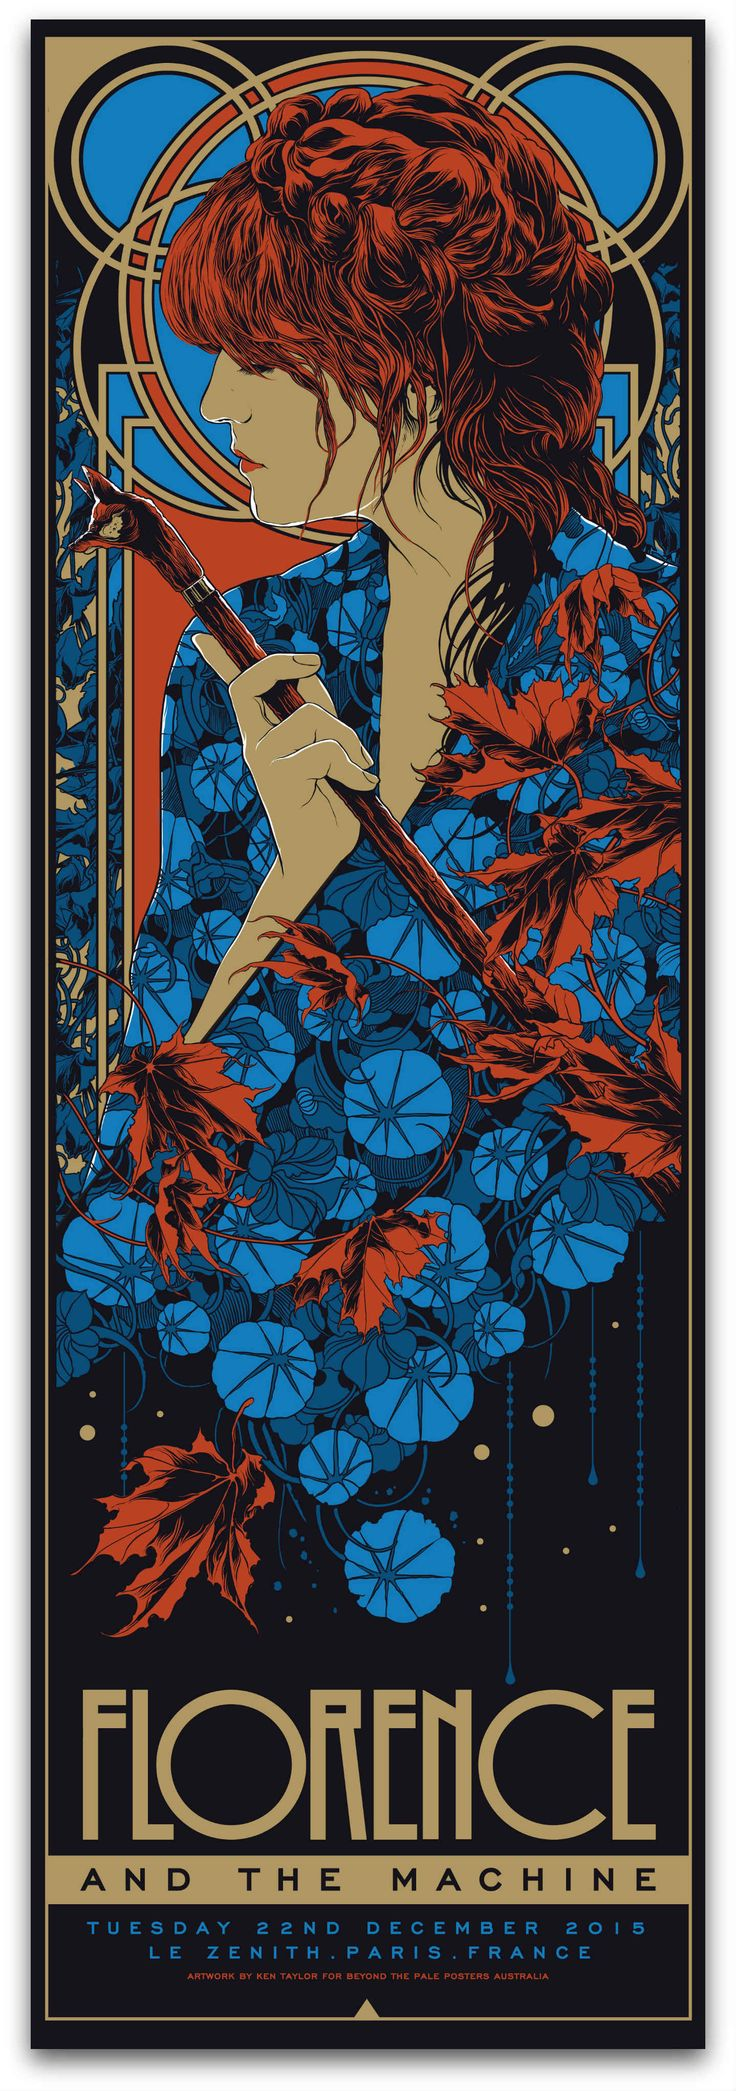 Florence and the Machine Concert Poster by Ken Taylor